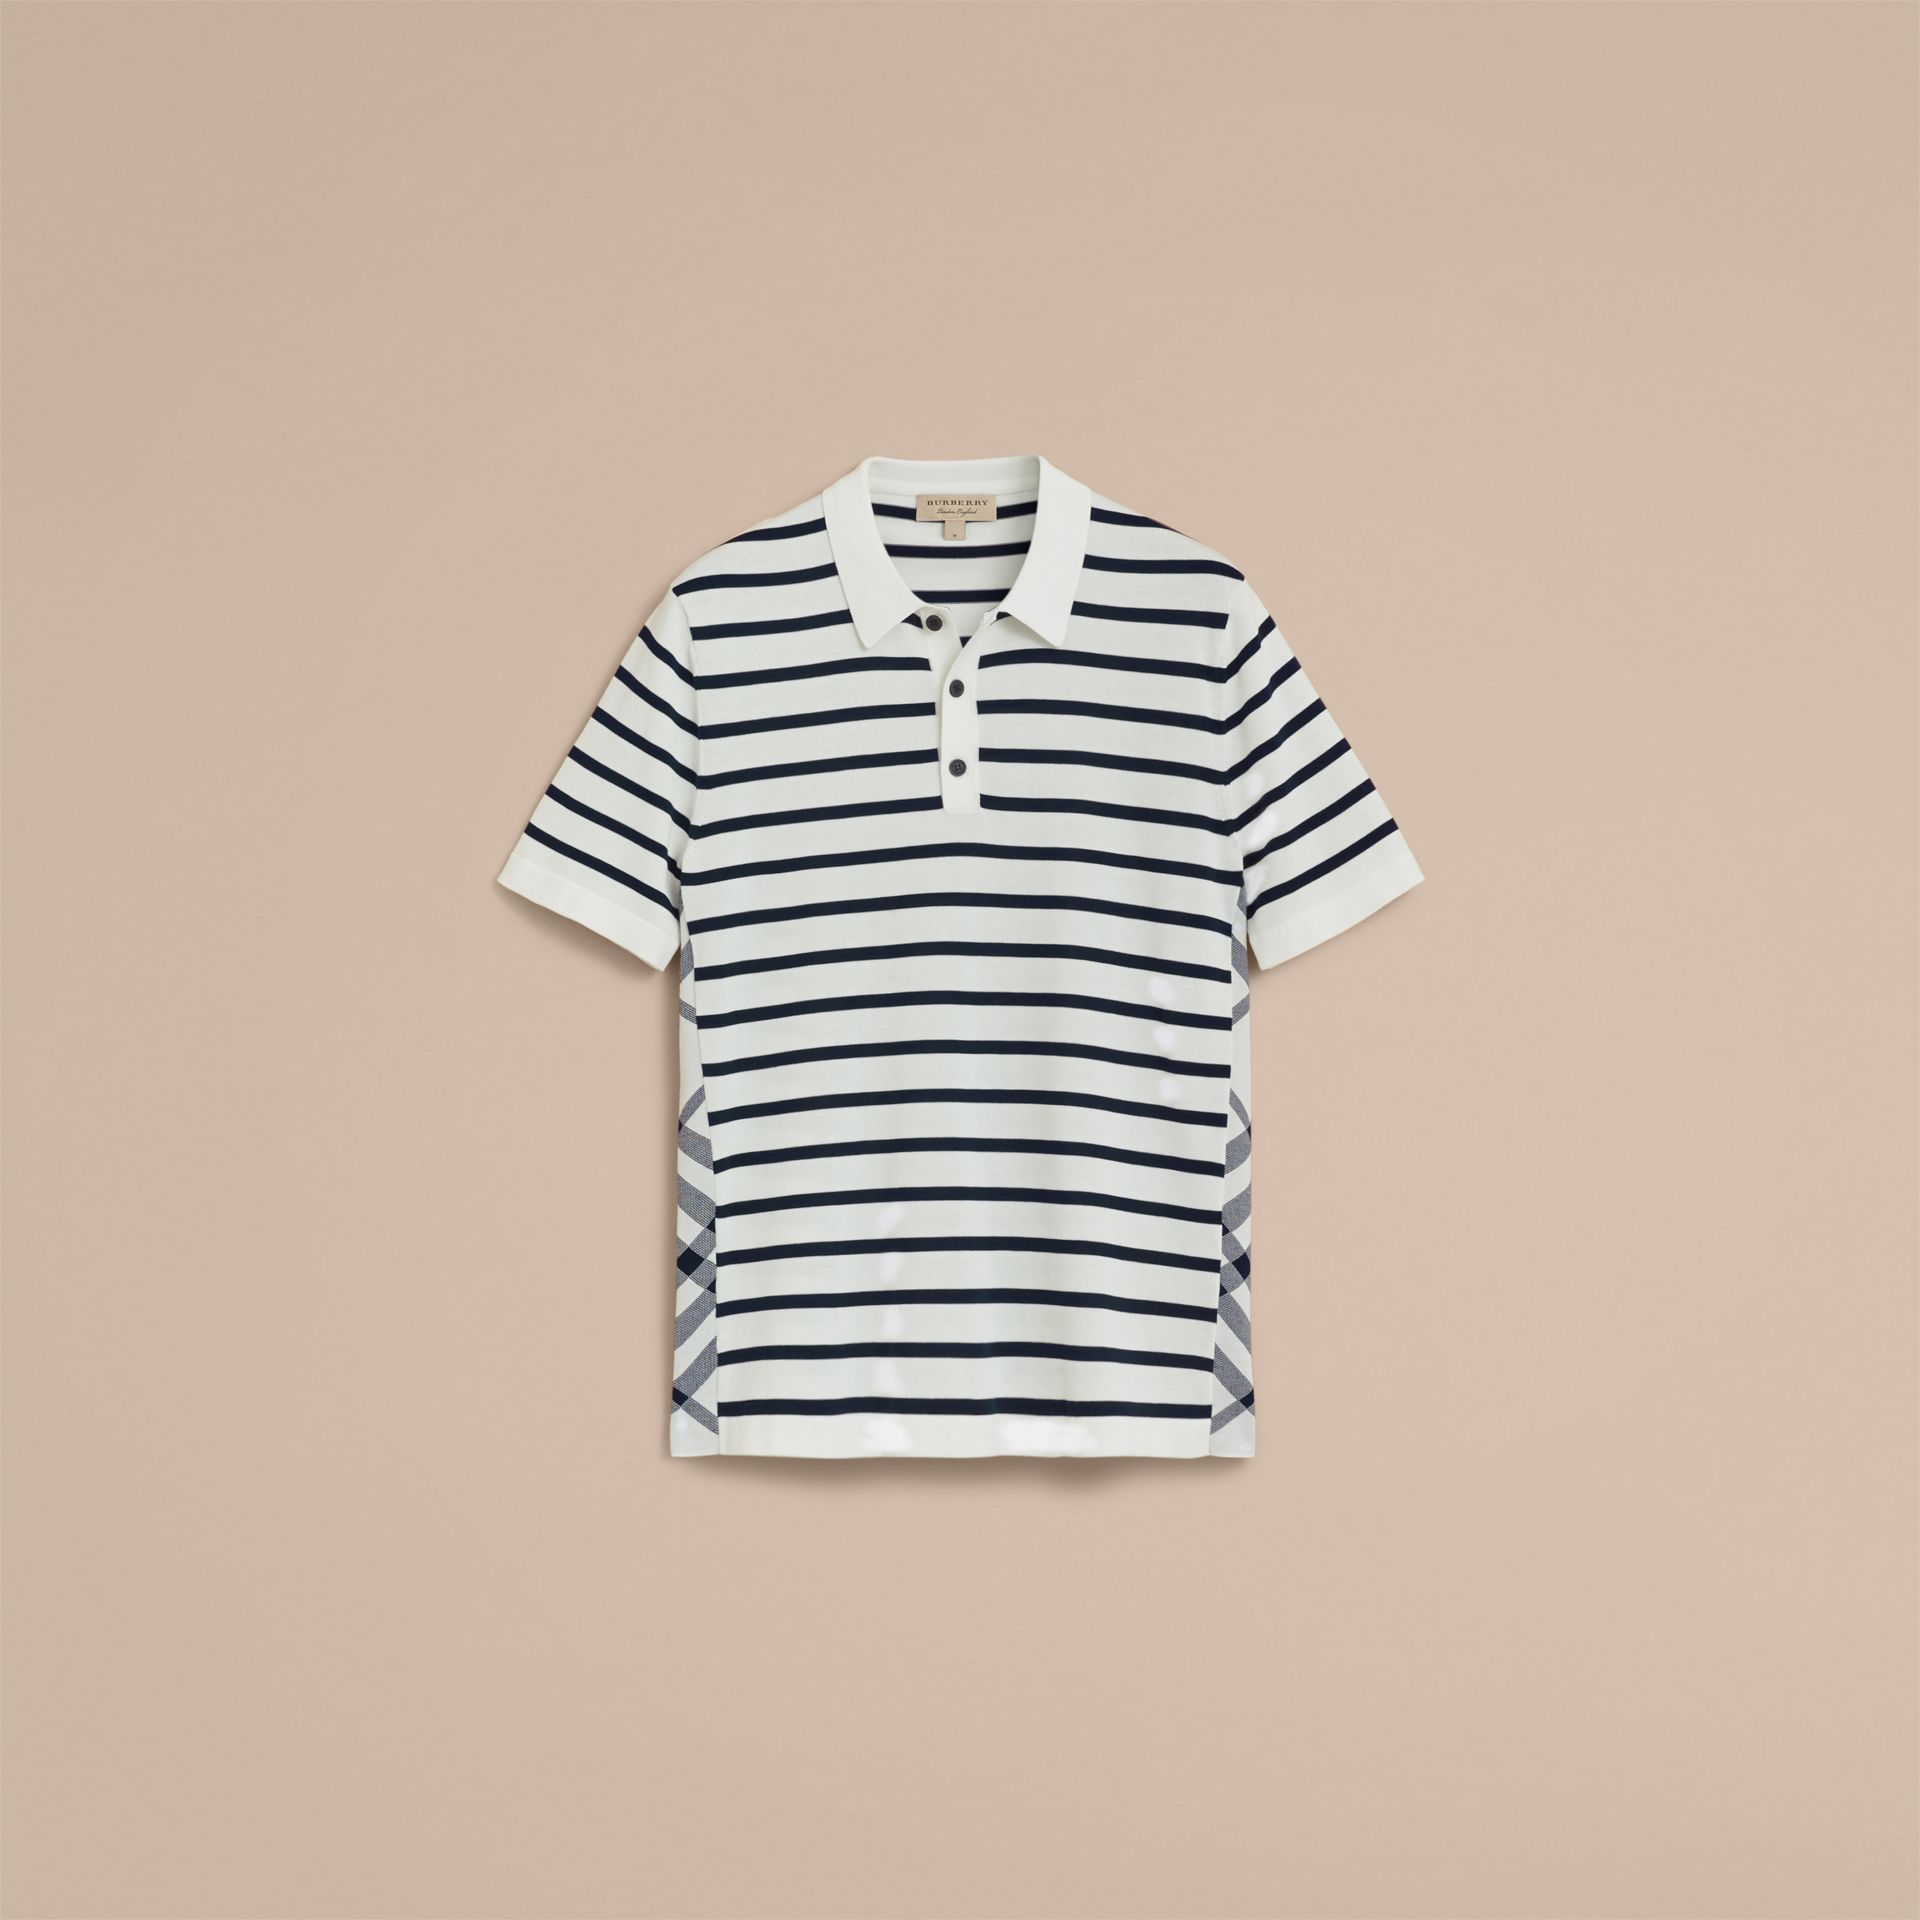 Breton Stripe Cotton Polo Shirt in White - Men | Burberry - gallery image 4